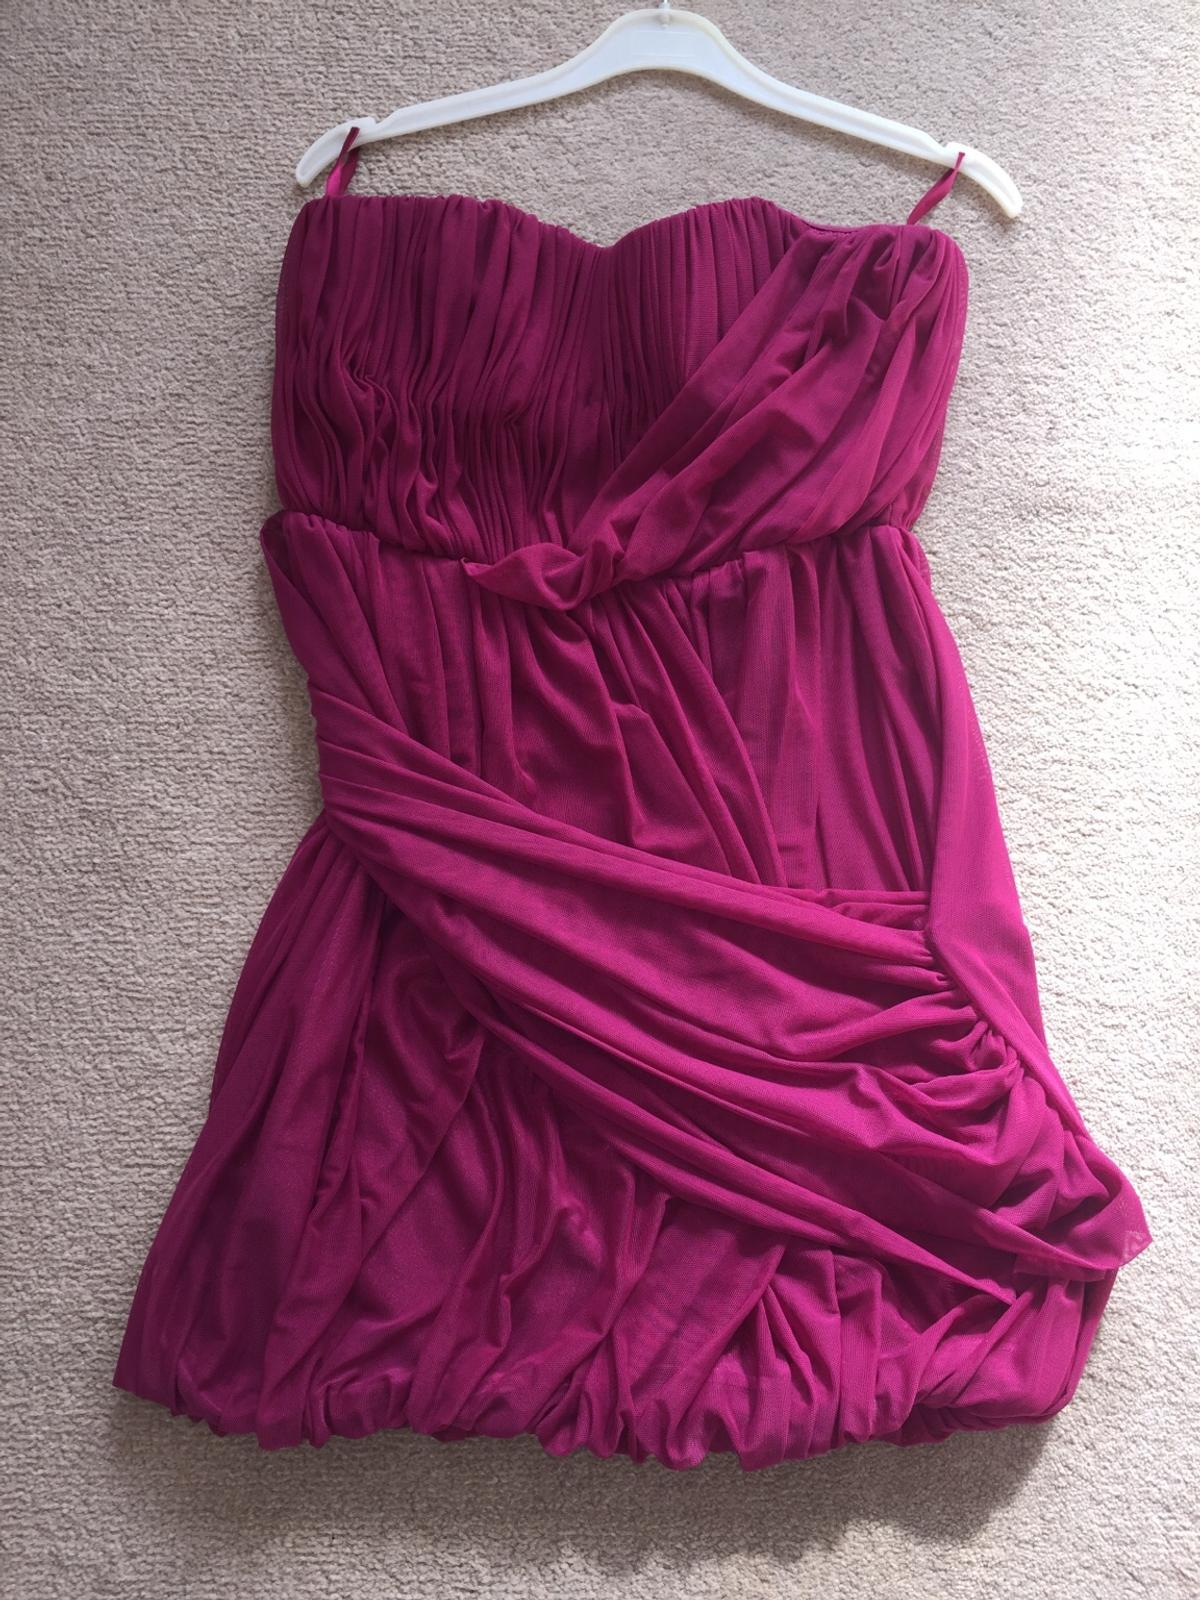 This is a lovely dress and comes from a smoke free home